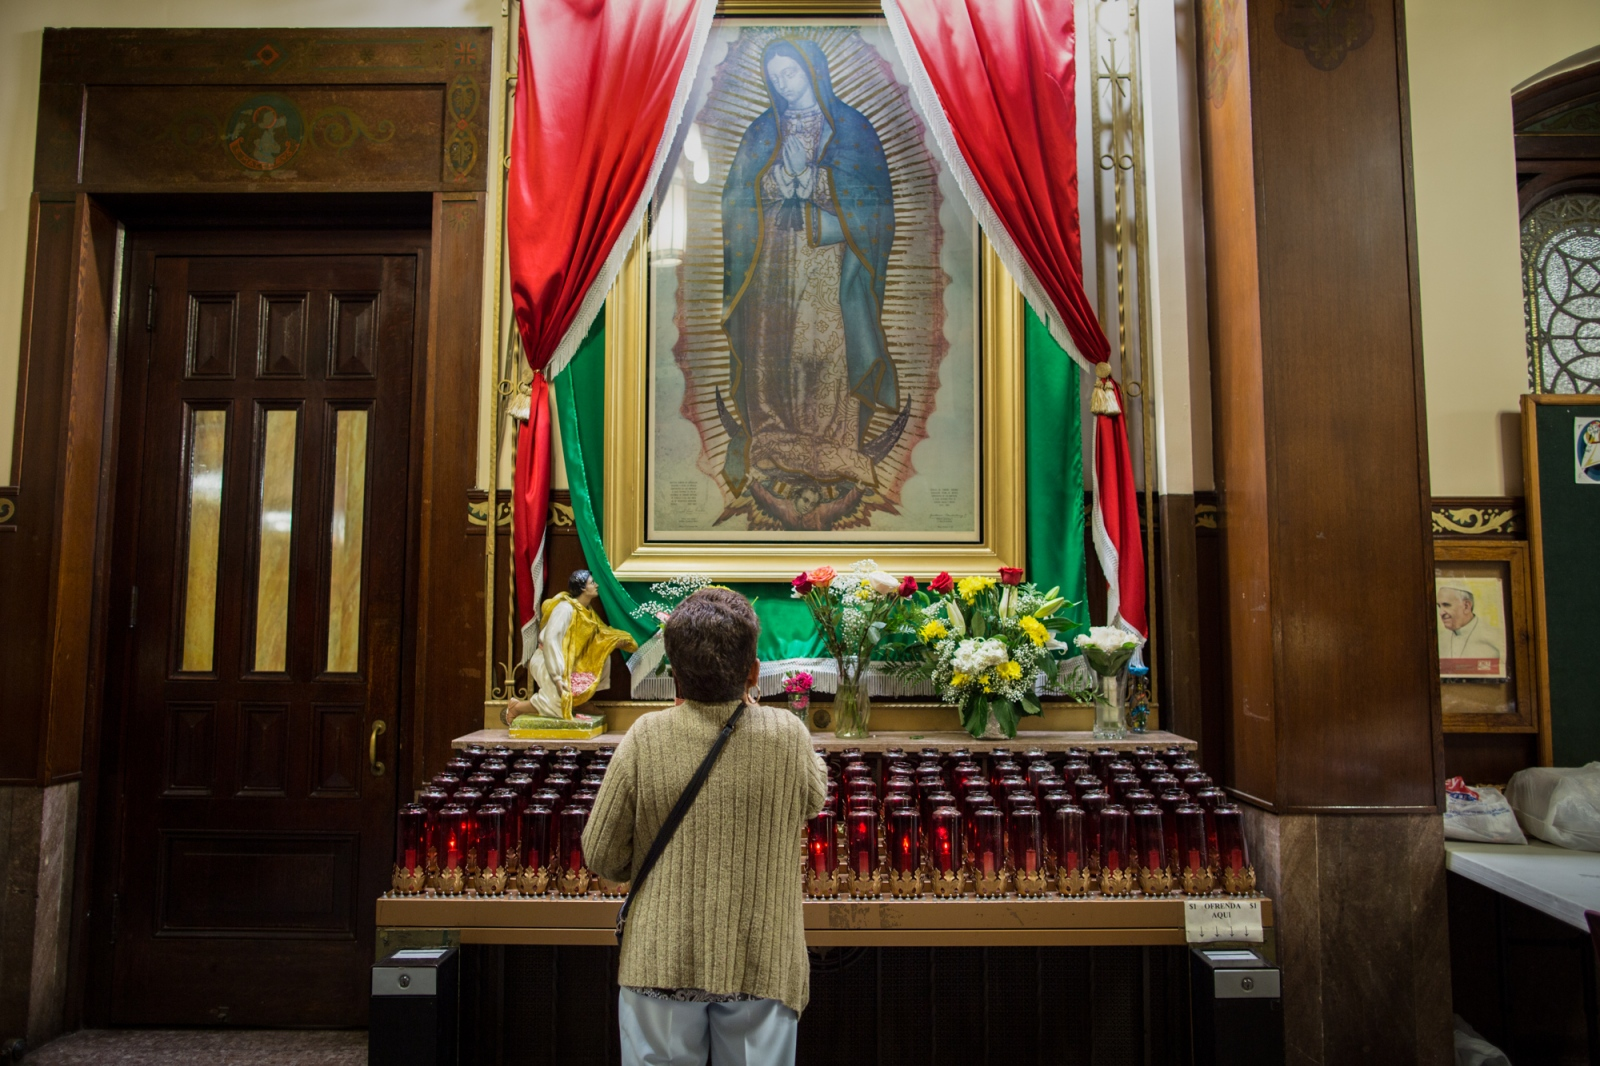 Gisela is a devotee of the Virgin of Guadalupe, every Saturday she goes to St. Michael´s church on 44th. St. to Mass. Besides she used to be part of a prayer group at the same church. Sunset Park, Brooklyn, New York, 2016.